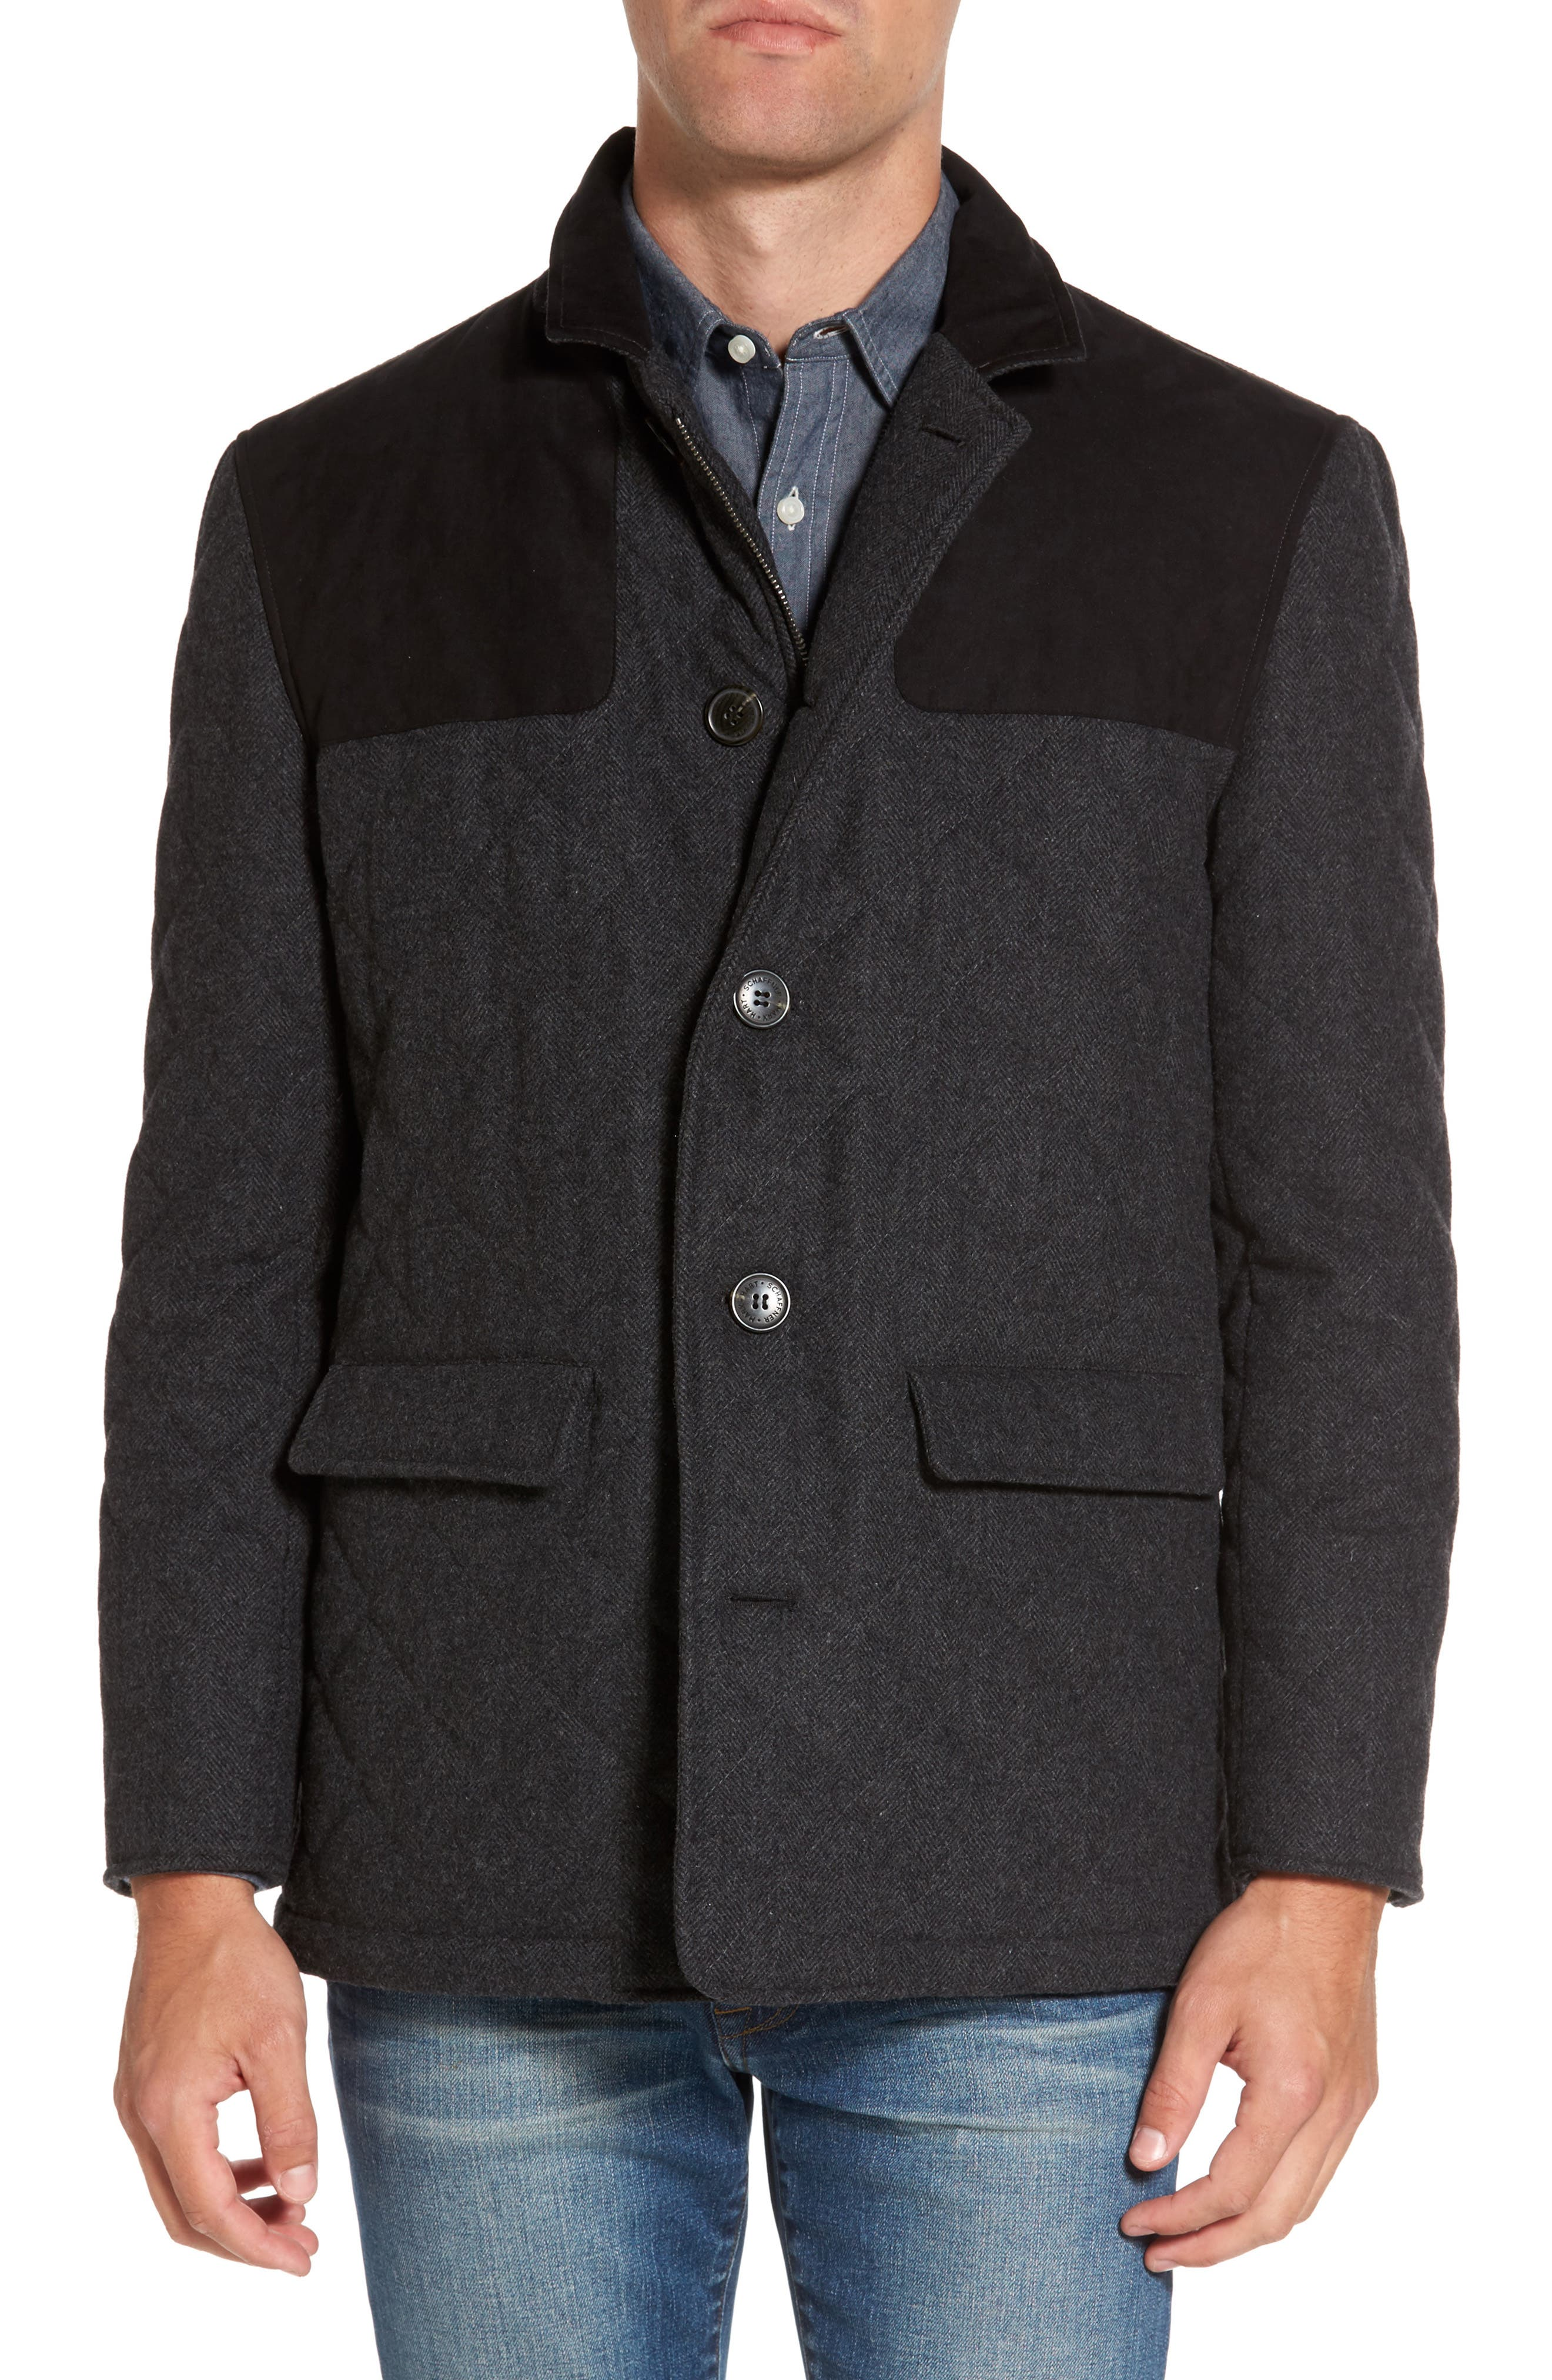 'Shooter' Wool Blend Quilted Jacket,                             Alternate thumbnail 4, color,                             Charcoal